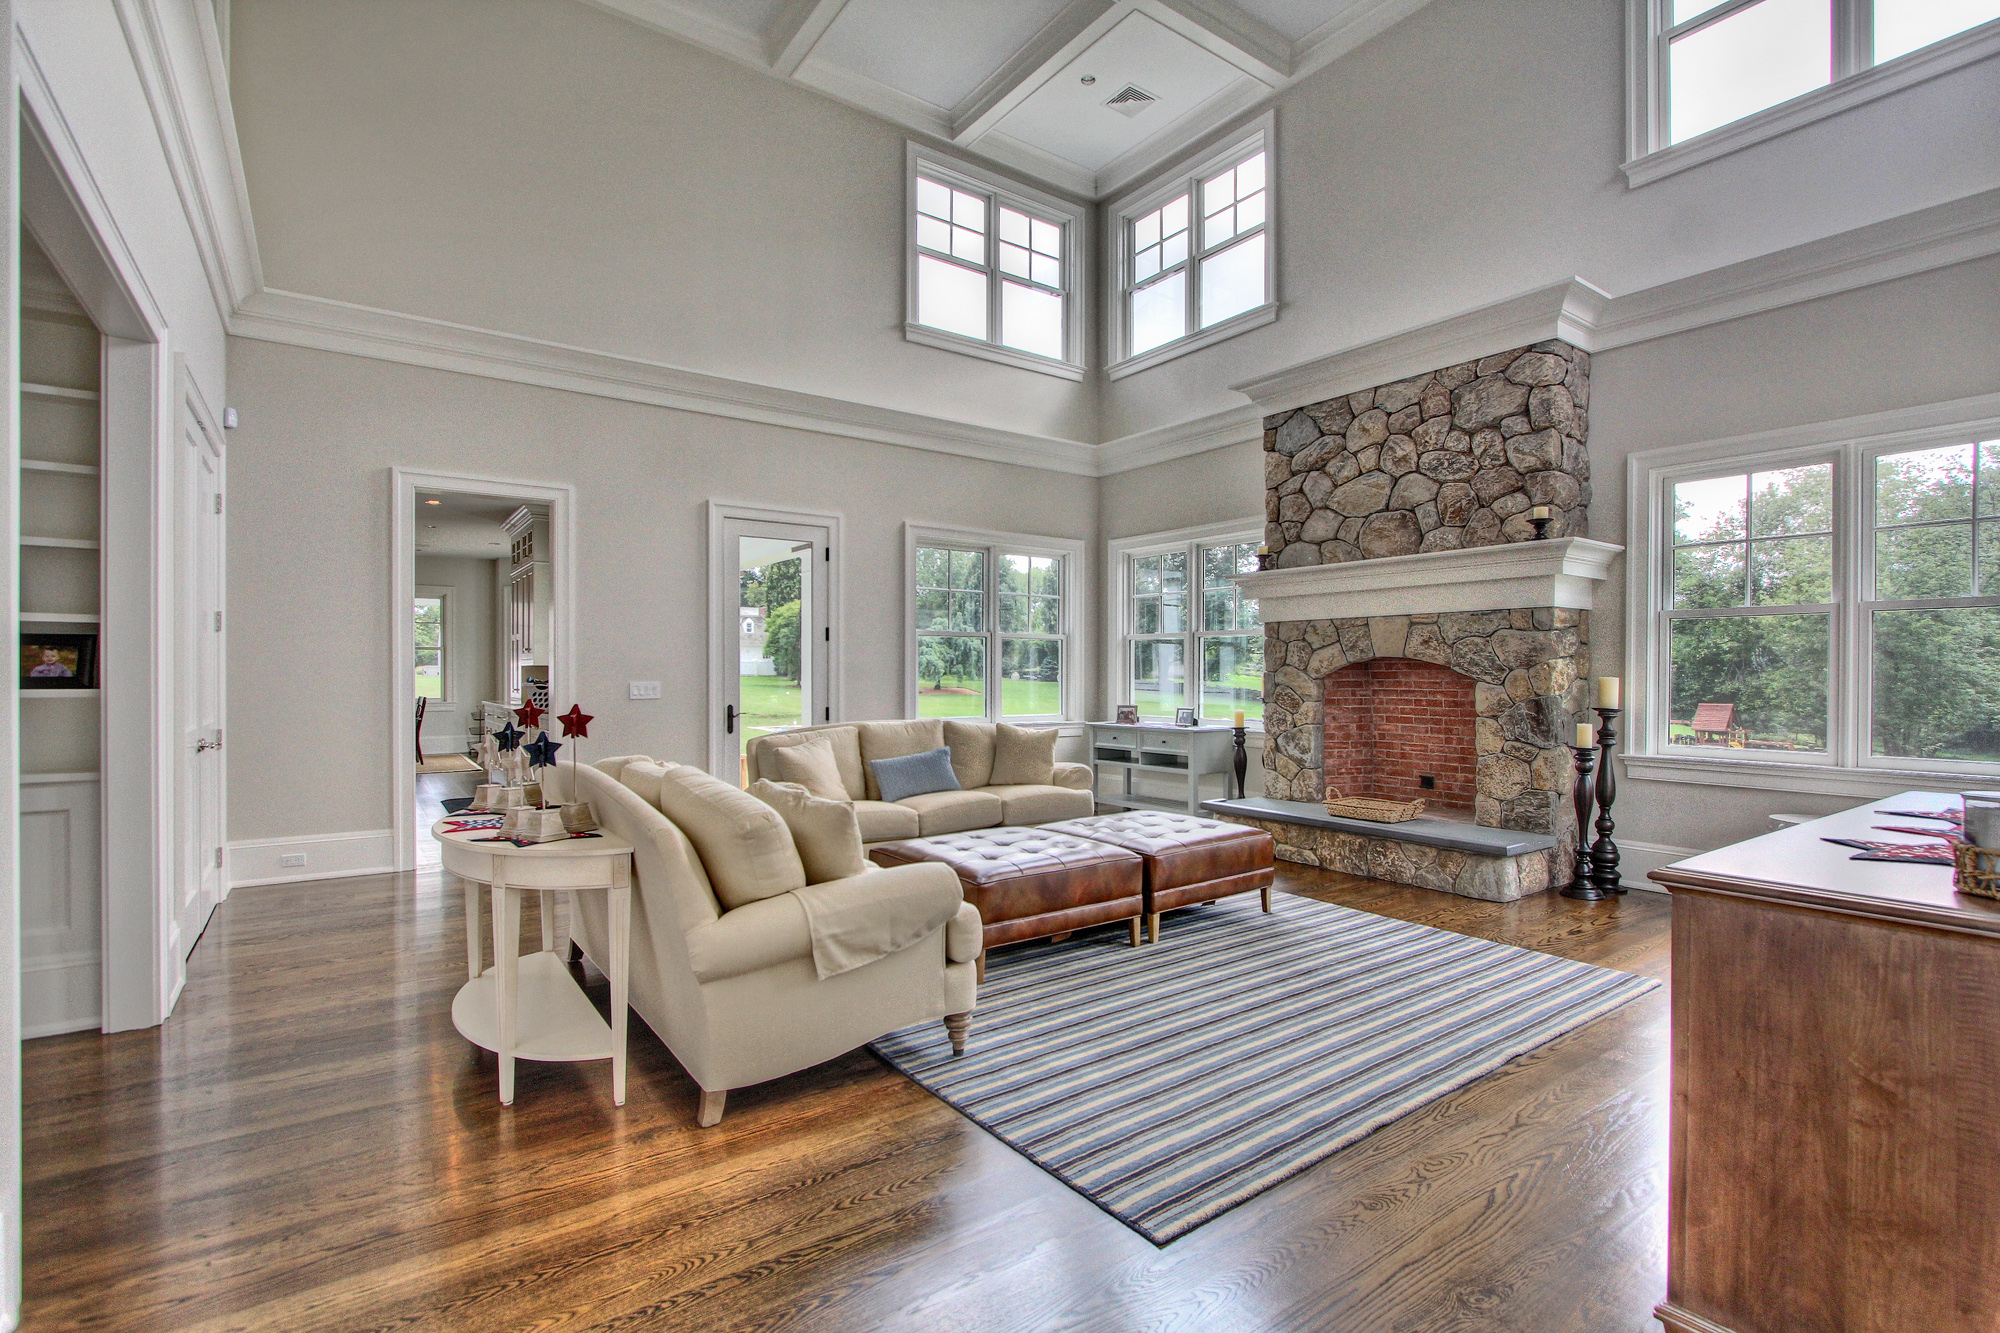 MATERIALS USED: CT FIELDSTONE, MOSAIC PHOTO CREDIT: TALLMAN SEGERSON BUILDERS